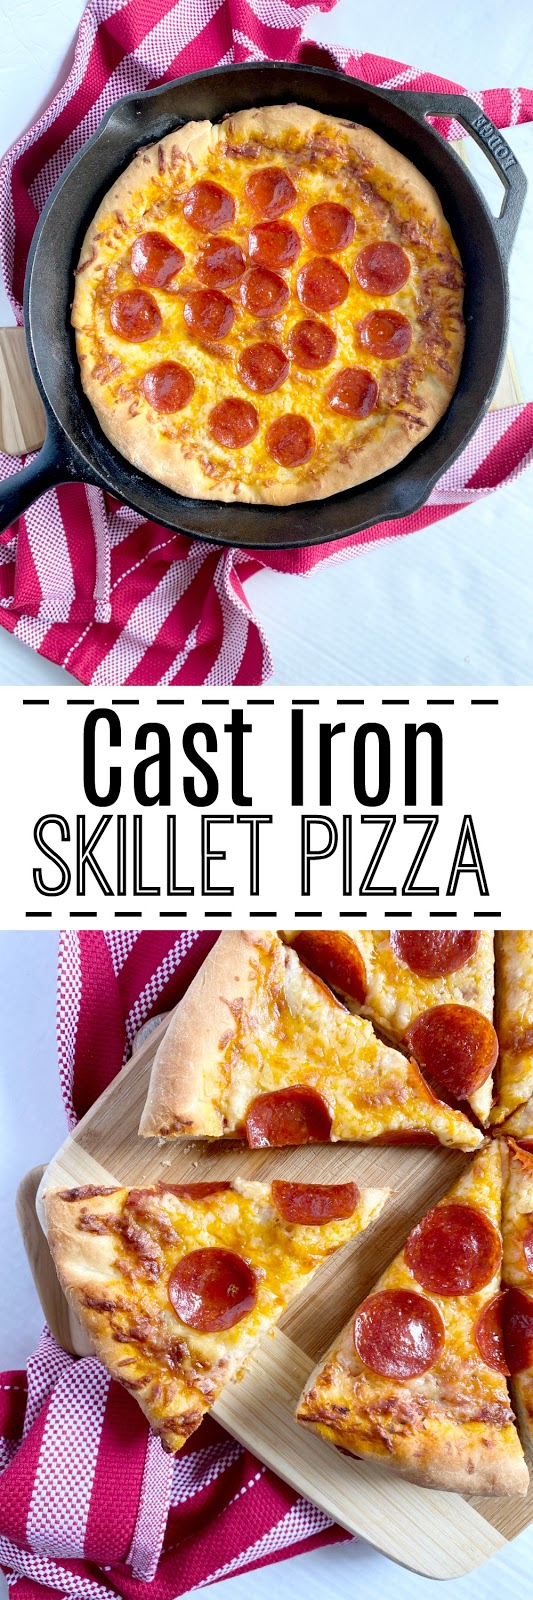 cast iron skillet pizza #sweetsavoryeats #castiron #skilletpizza